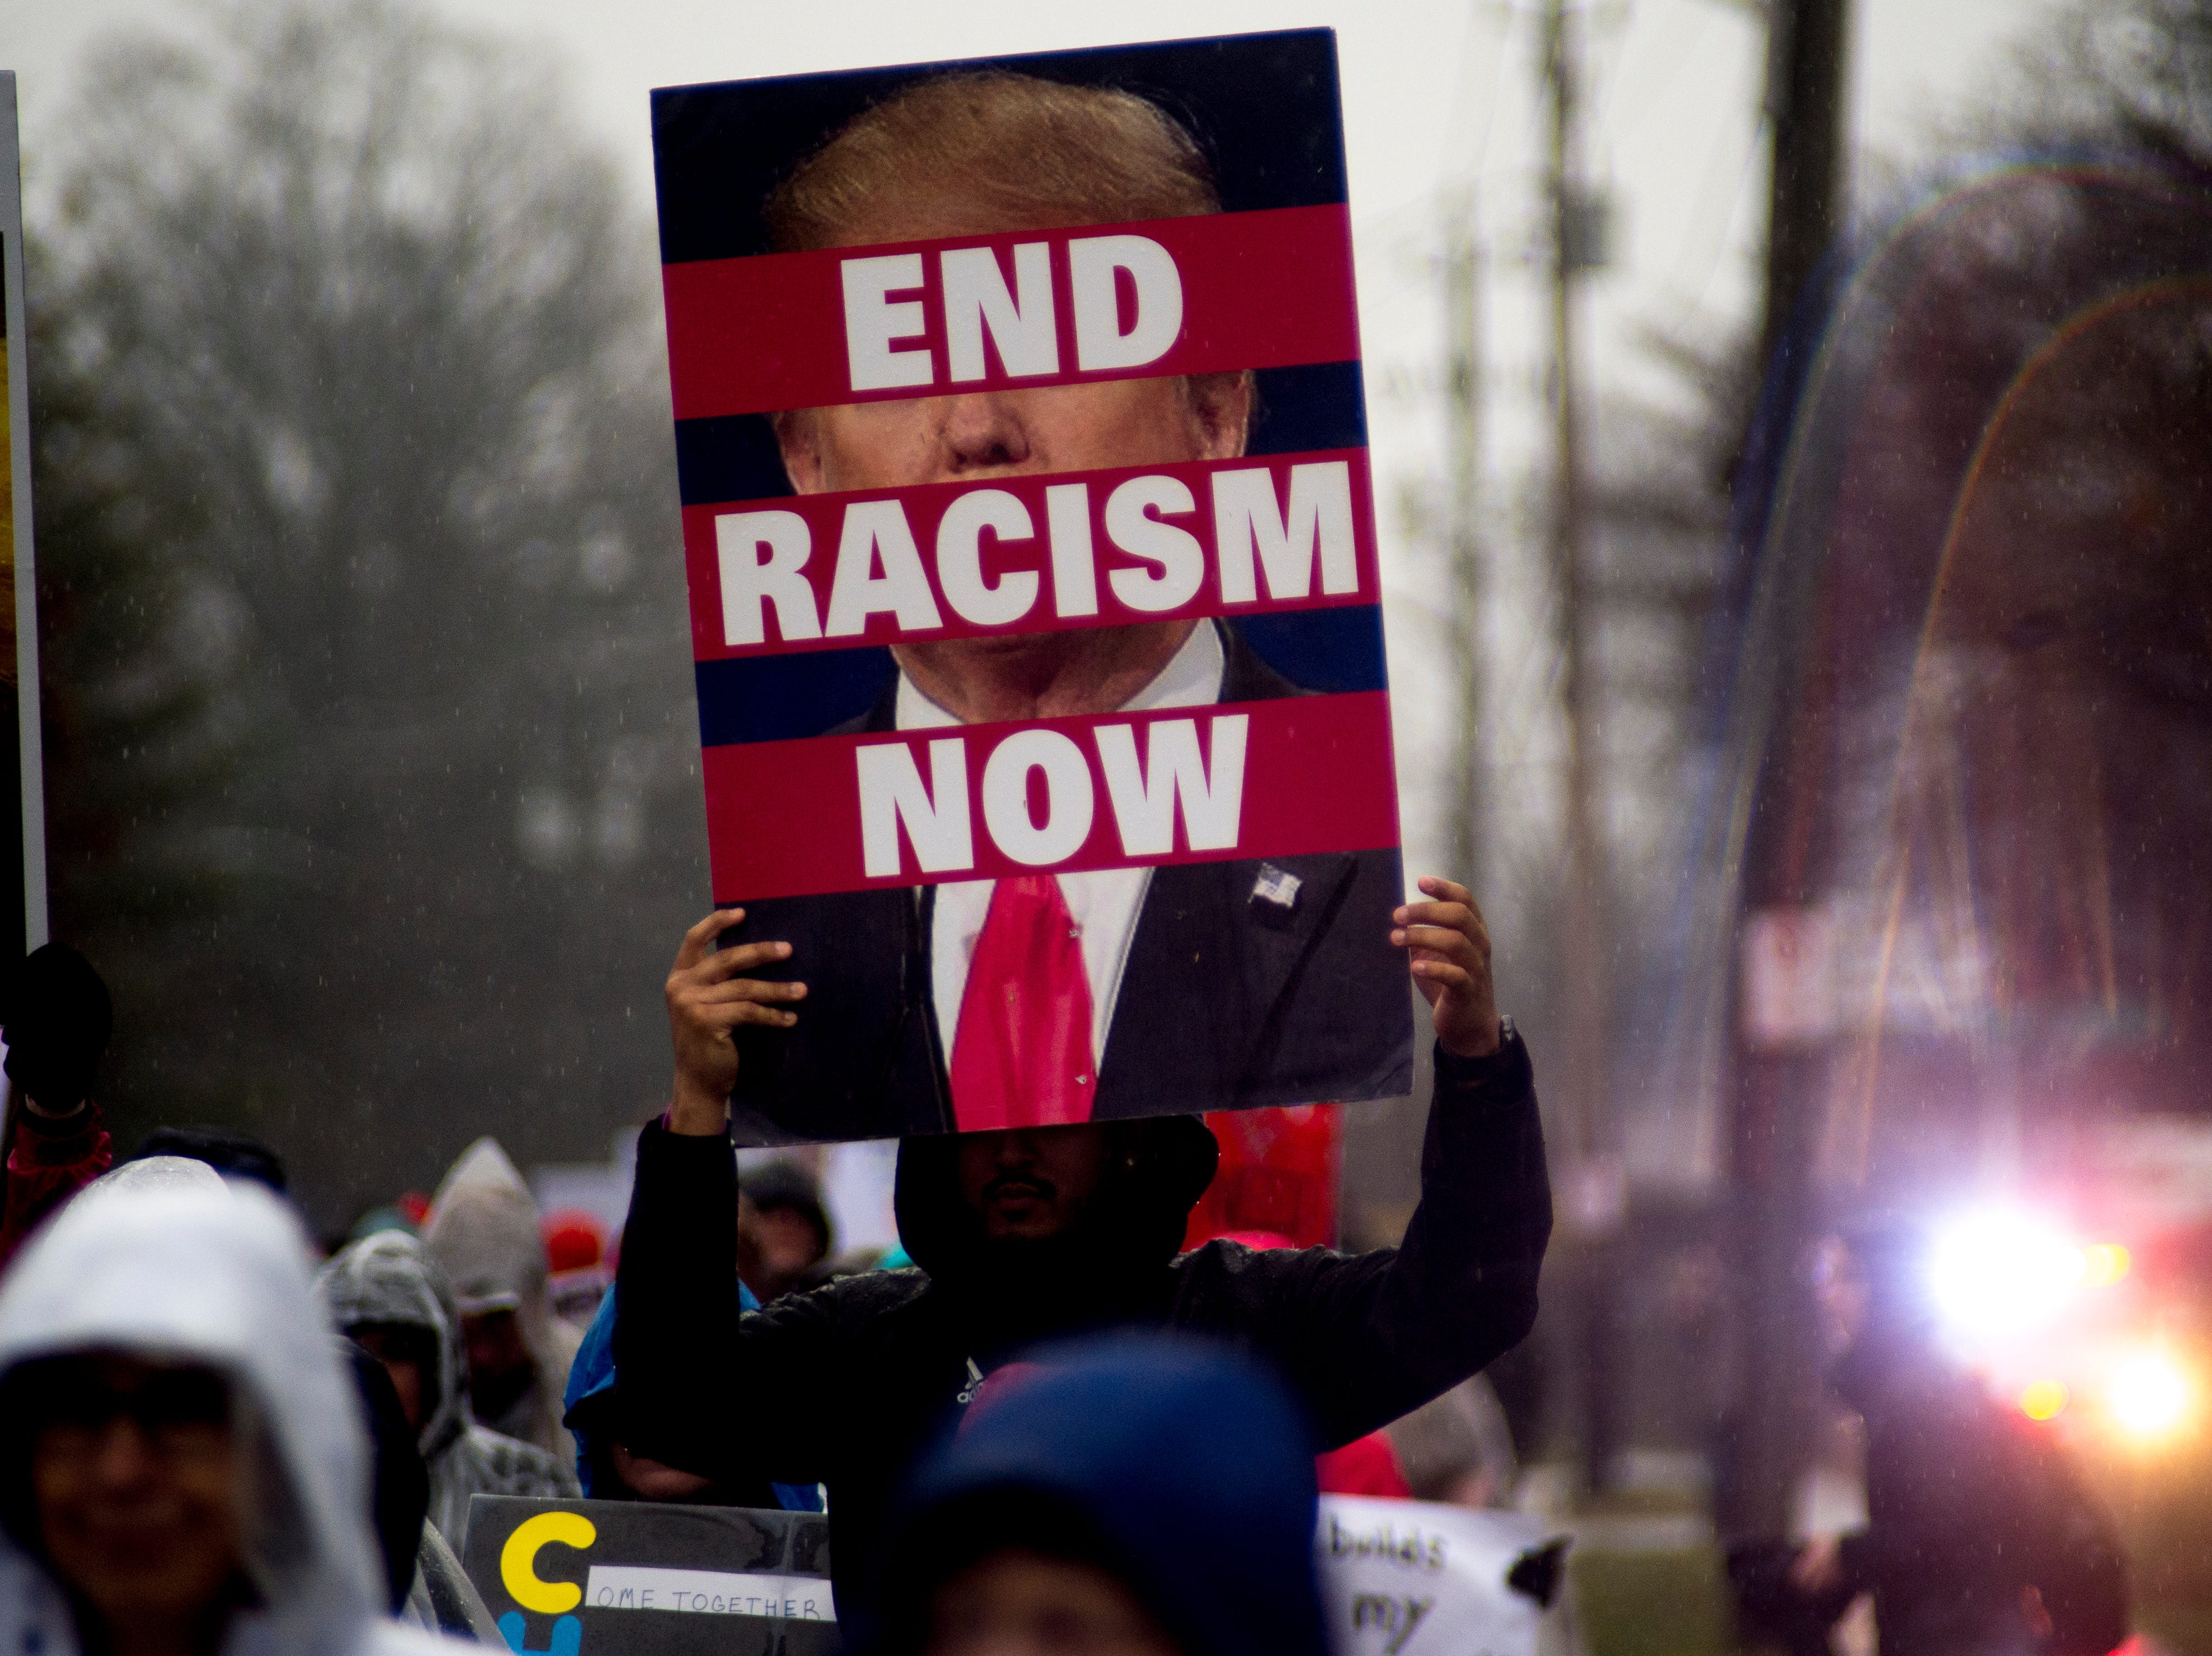 Demonstrators march down Martin Luther King Blvd. at the 2019 Knoxville Women's March at Chilhowee Park in Knoxville, Tennessee on Saturday, January 19, 2019.